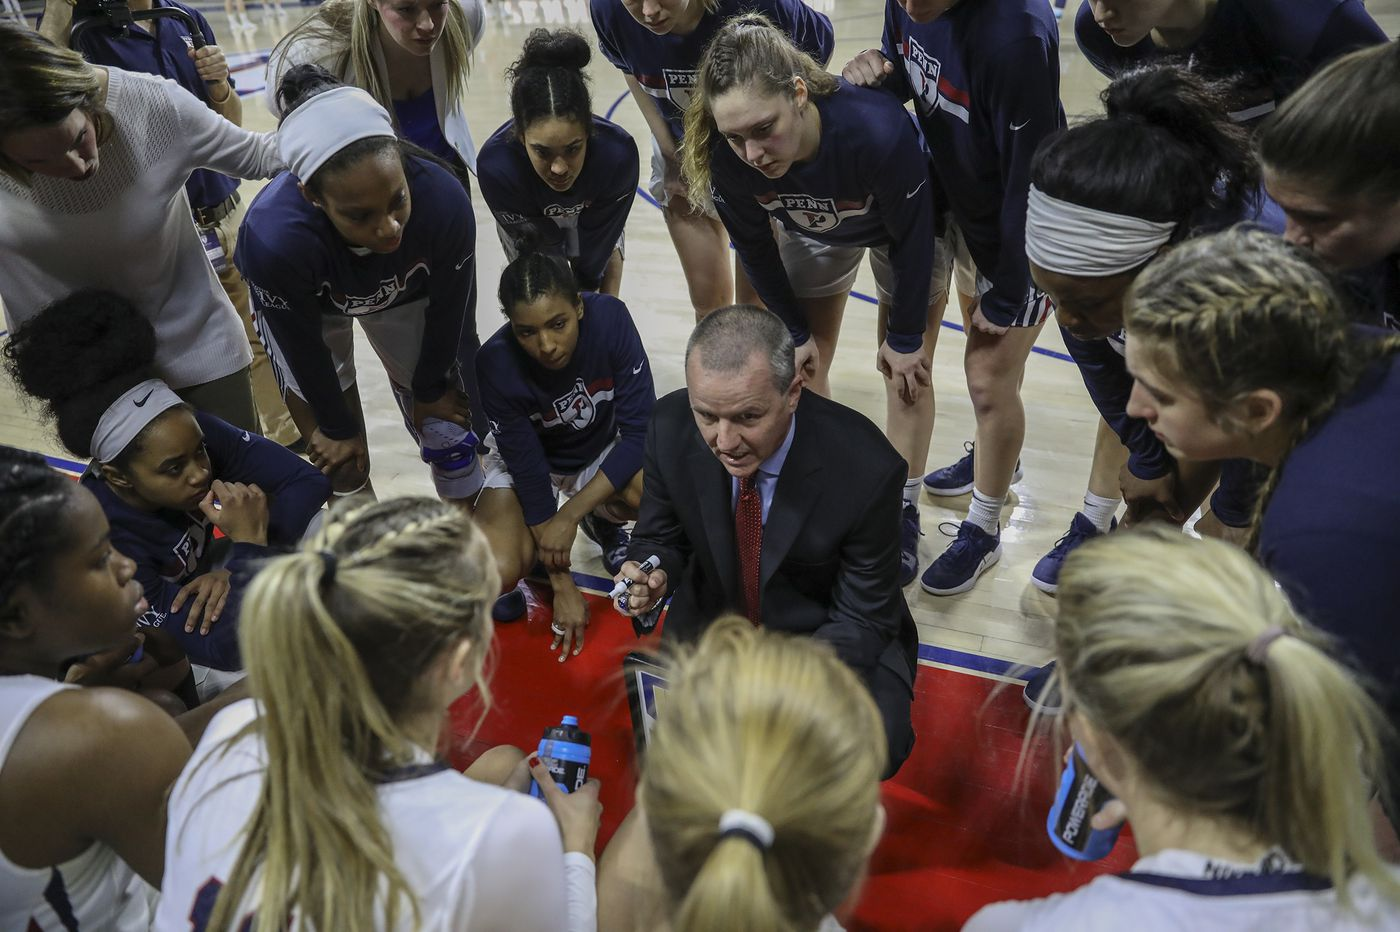 Penn women set for Ivy Tournament showdown with Harvard after two overtime games this season